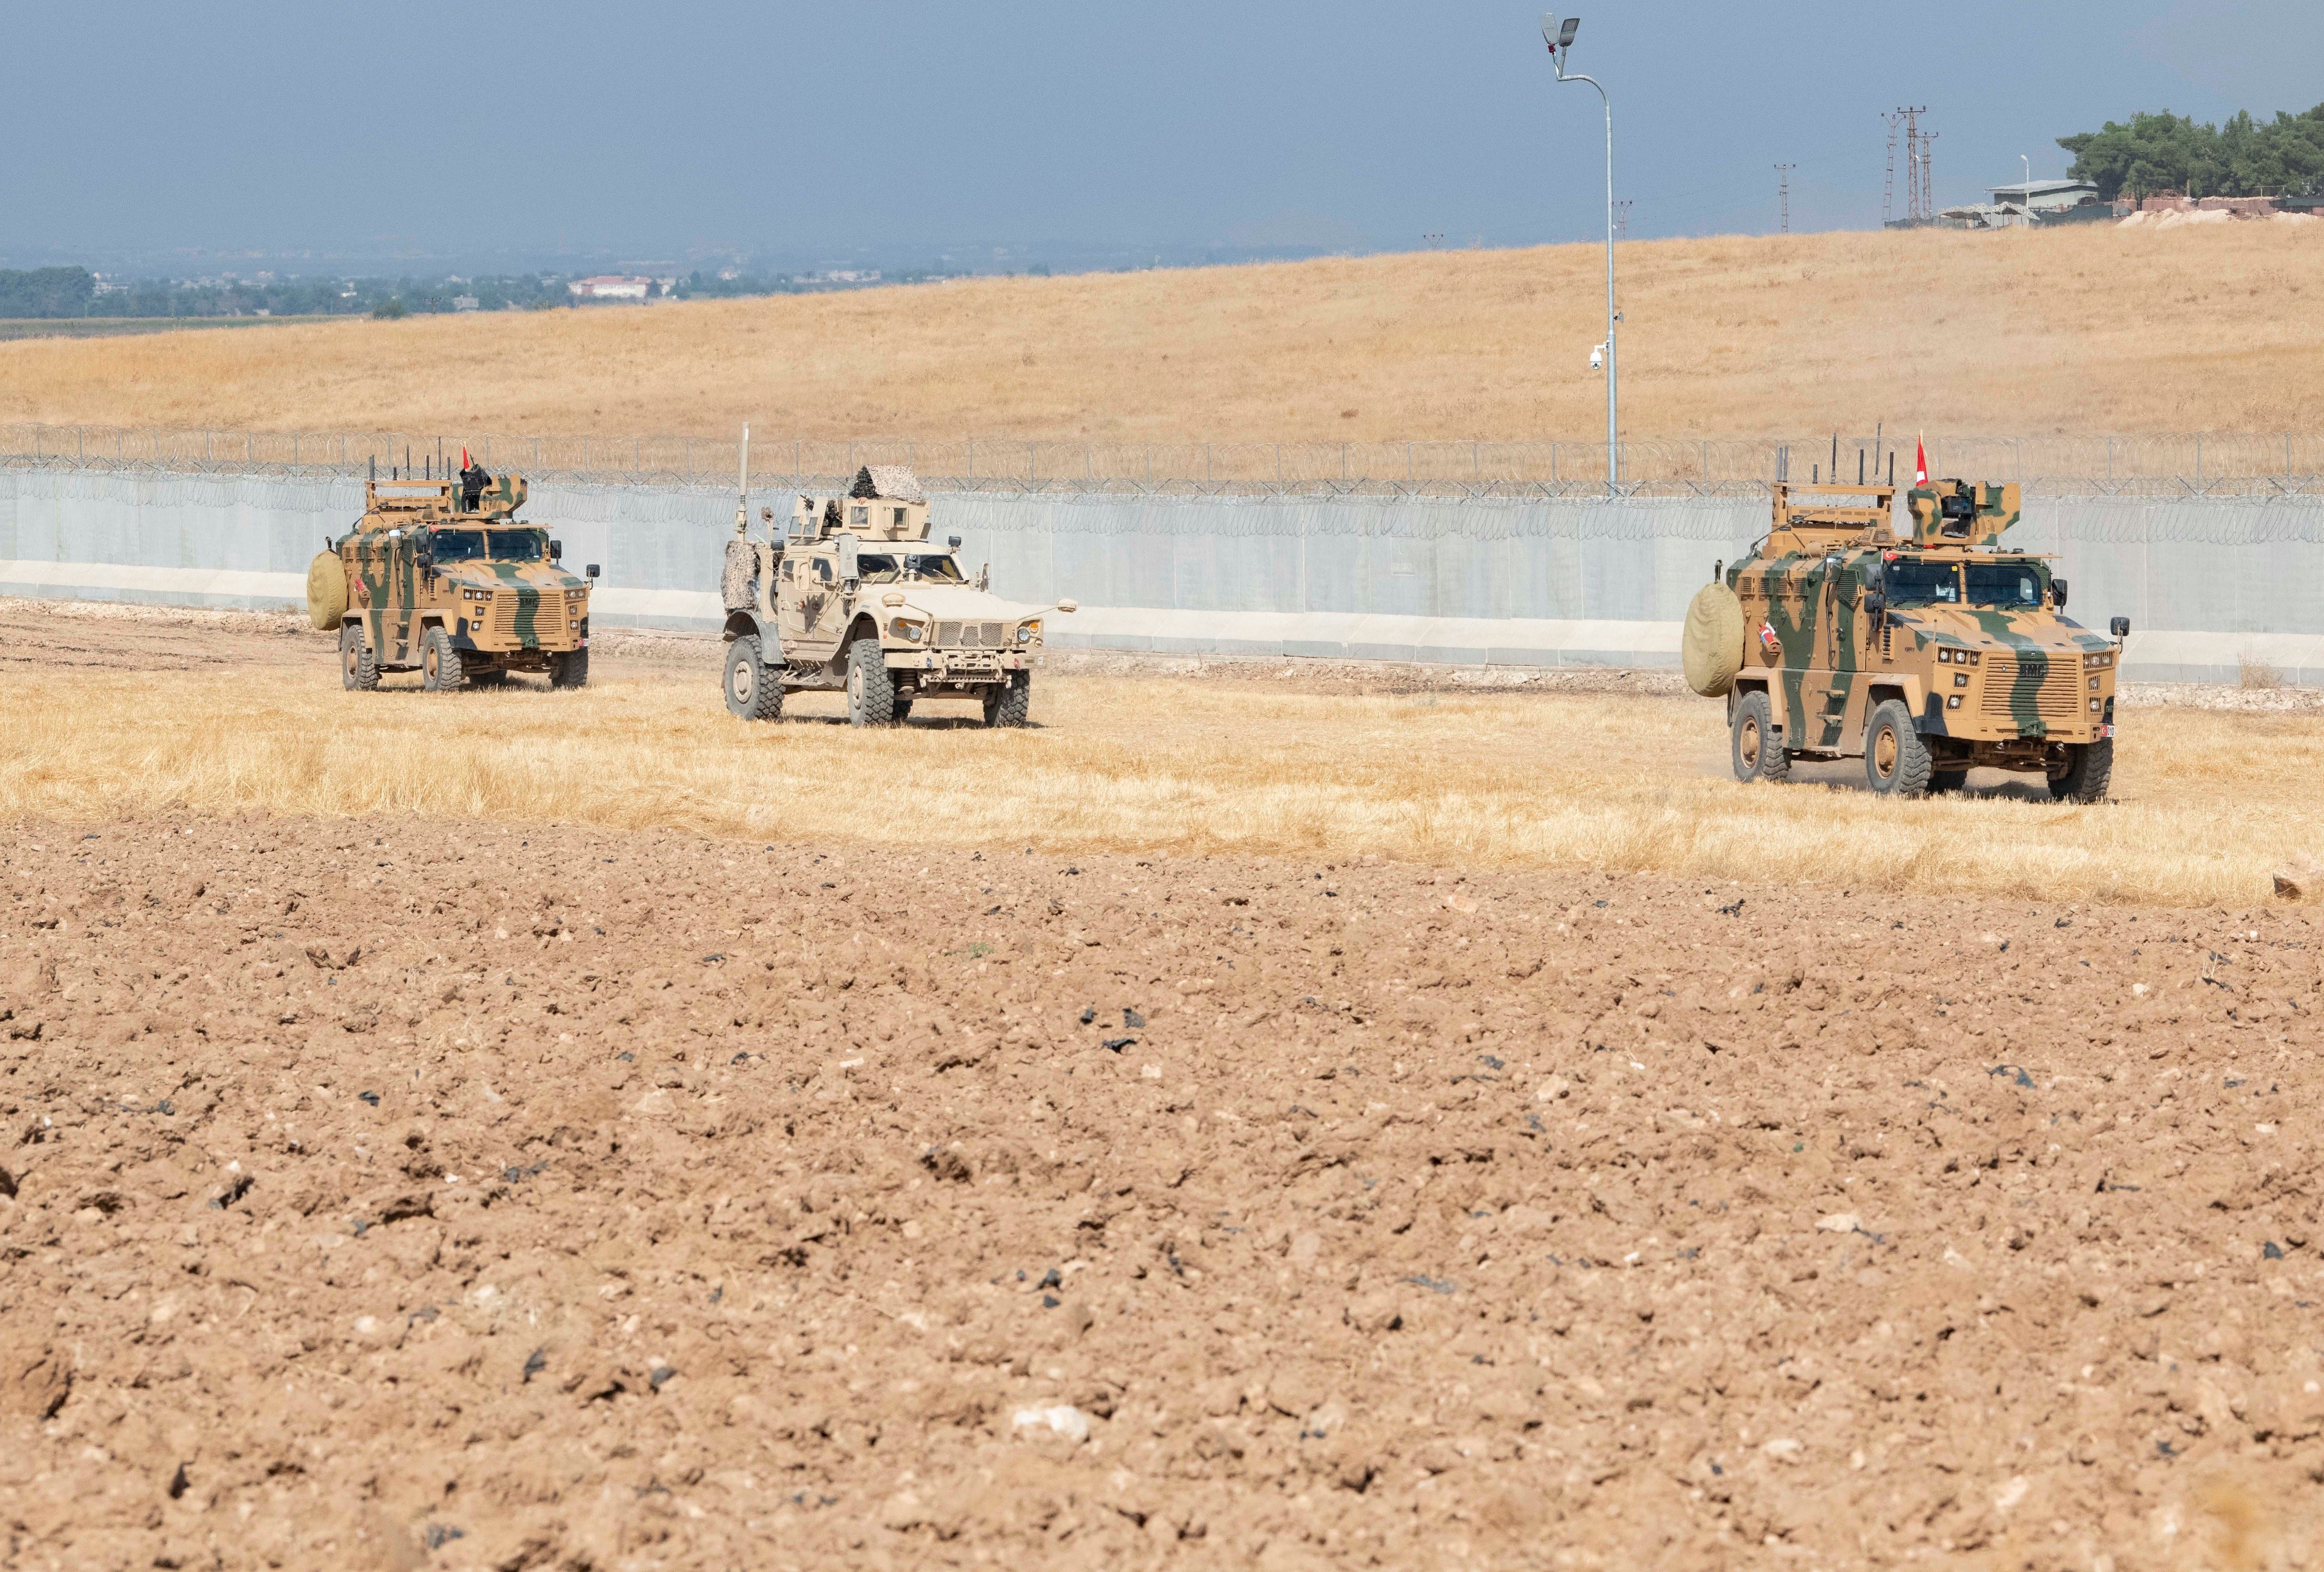 A photo issued on Monday showing US and Turkish military forces in armoured trucks